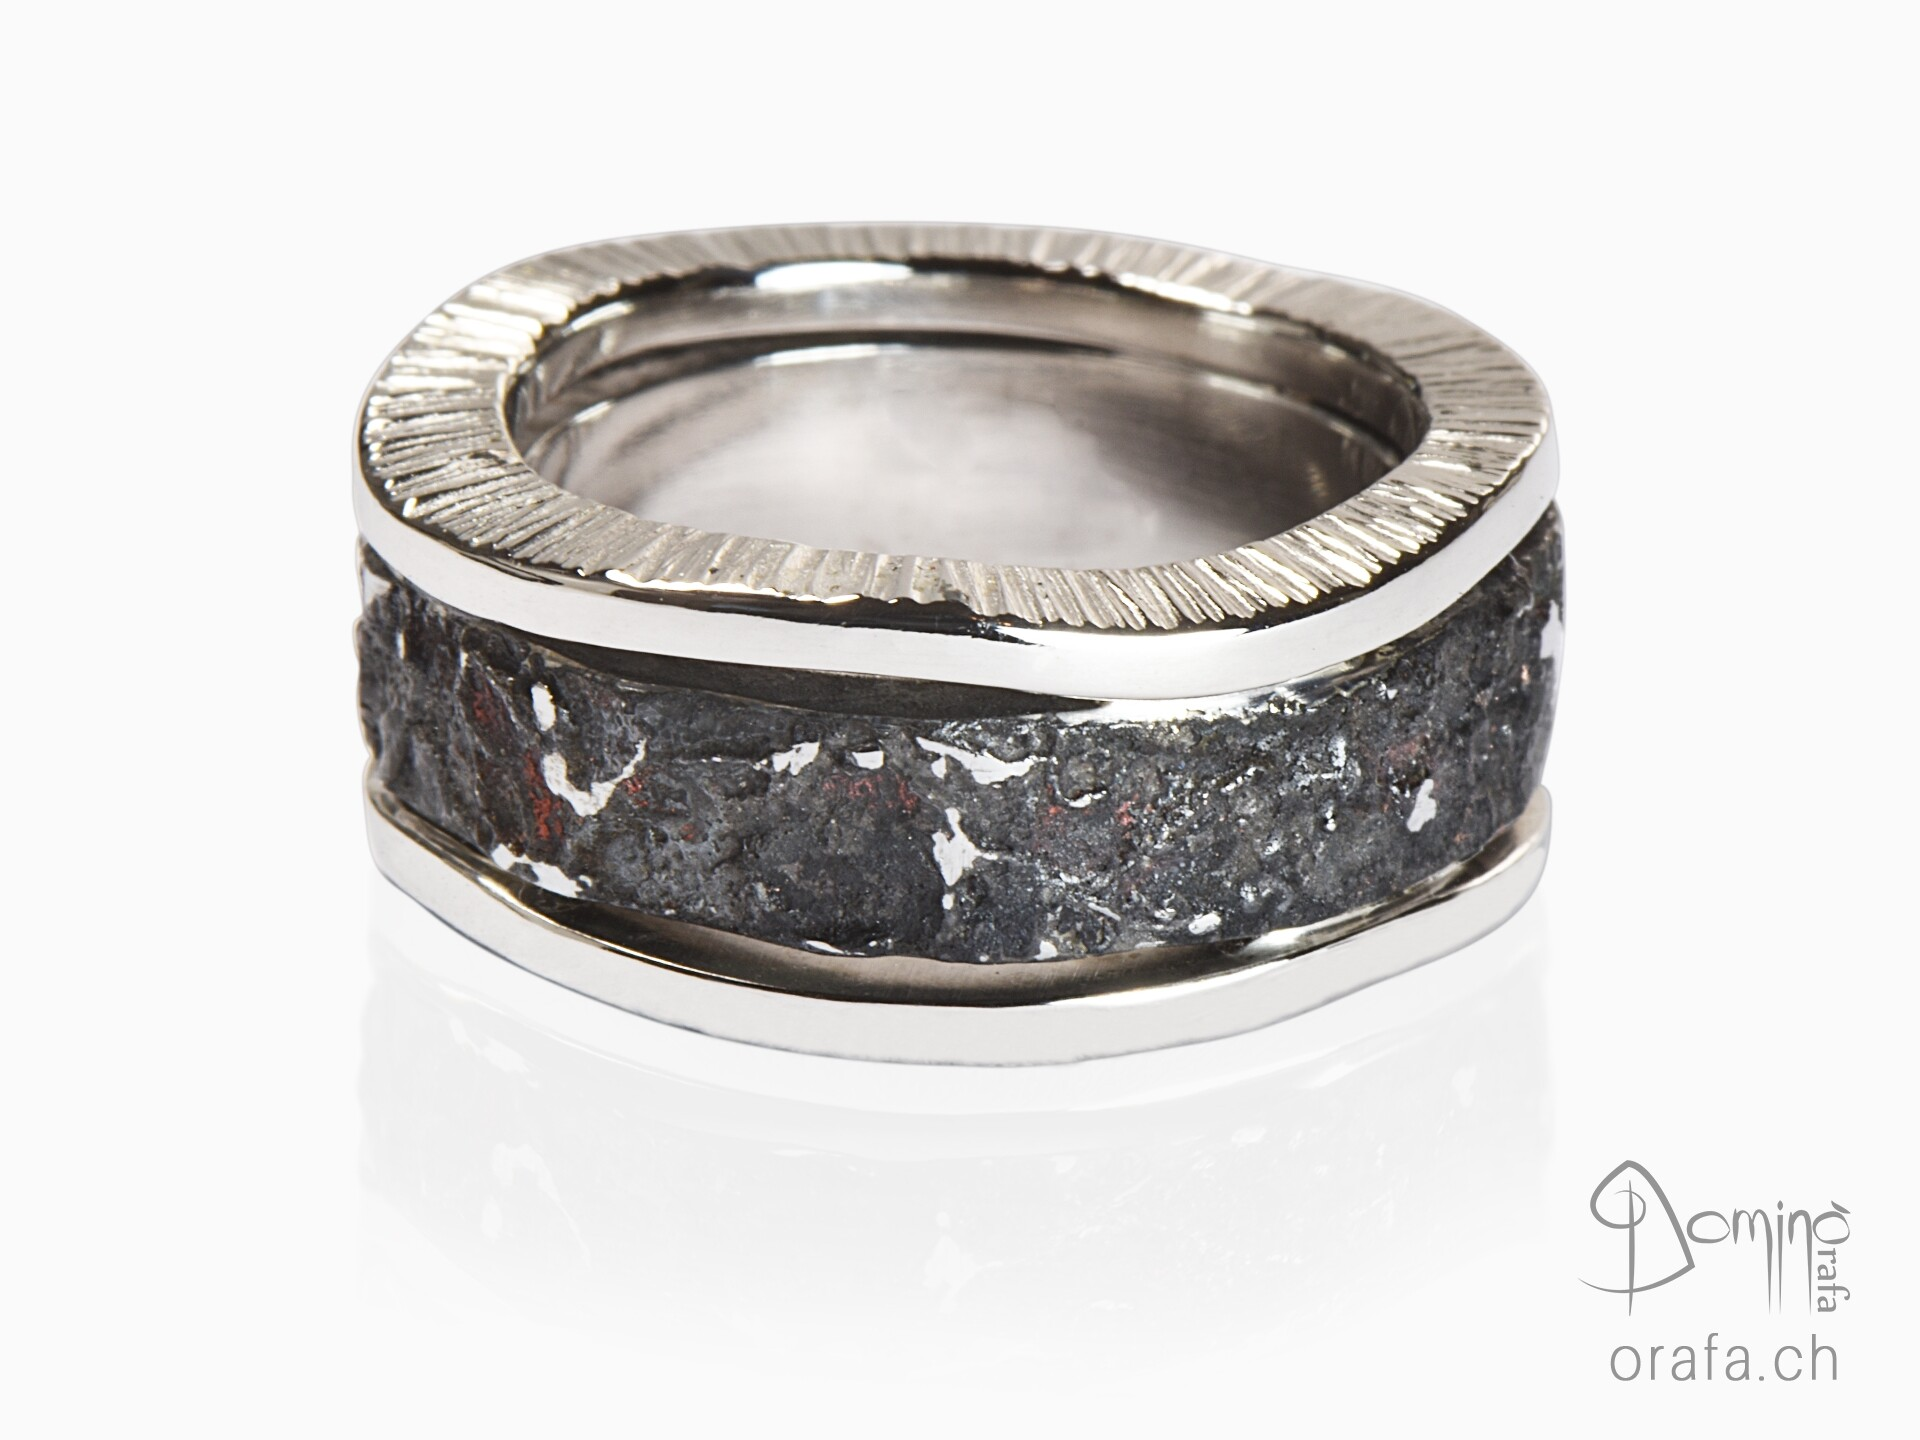 Ferro Prezioso ring with irregular edge